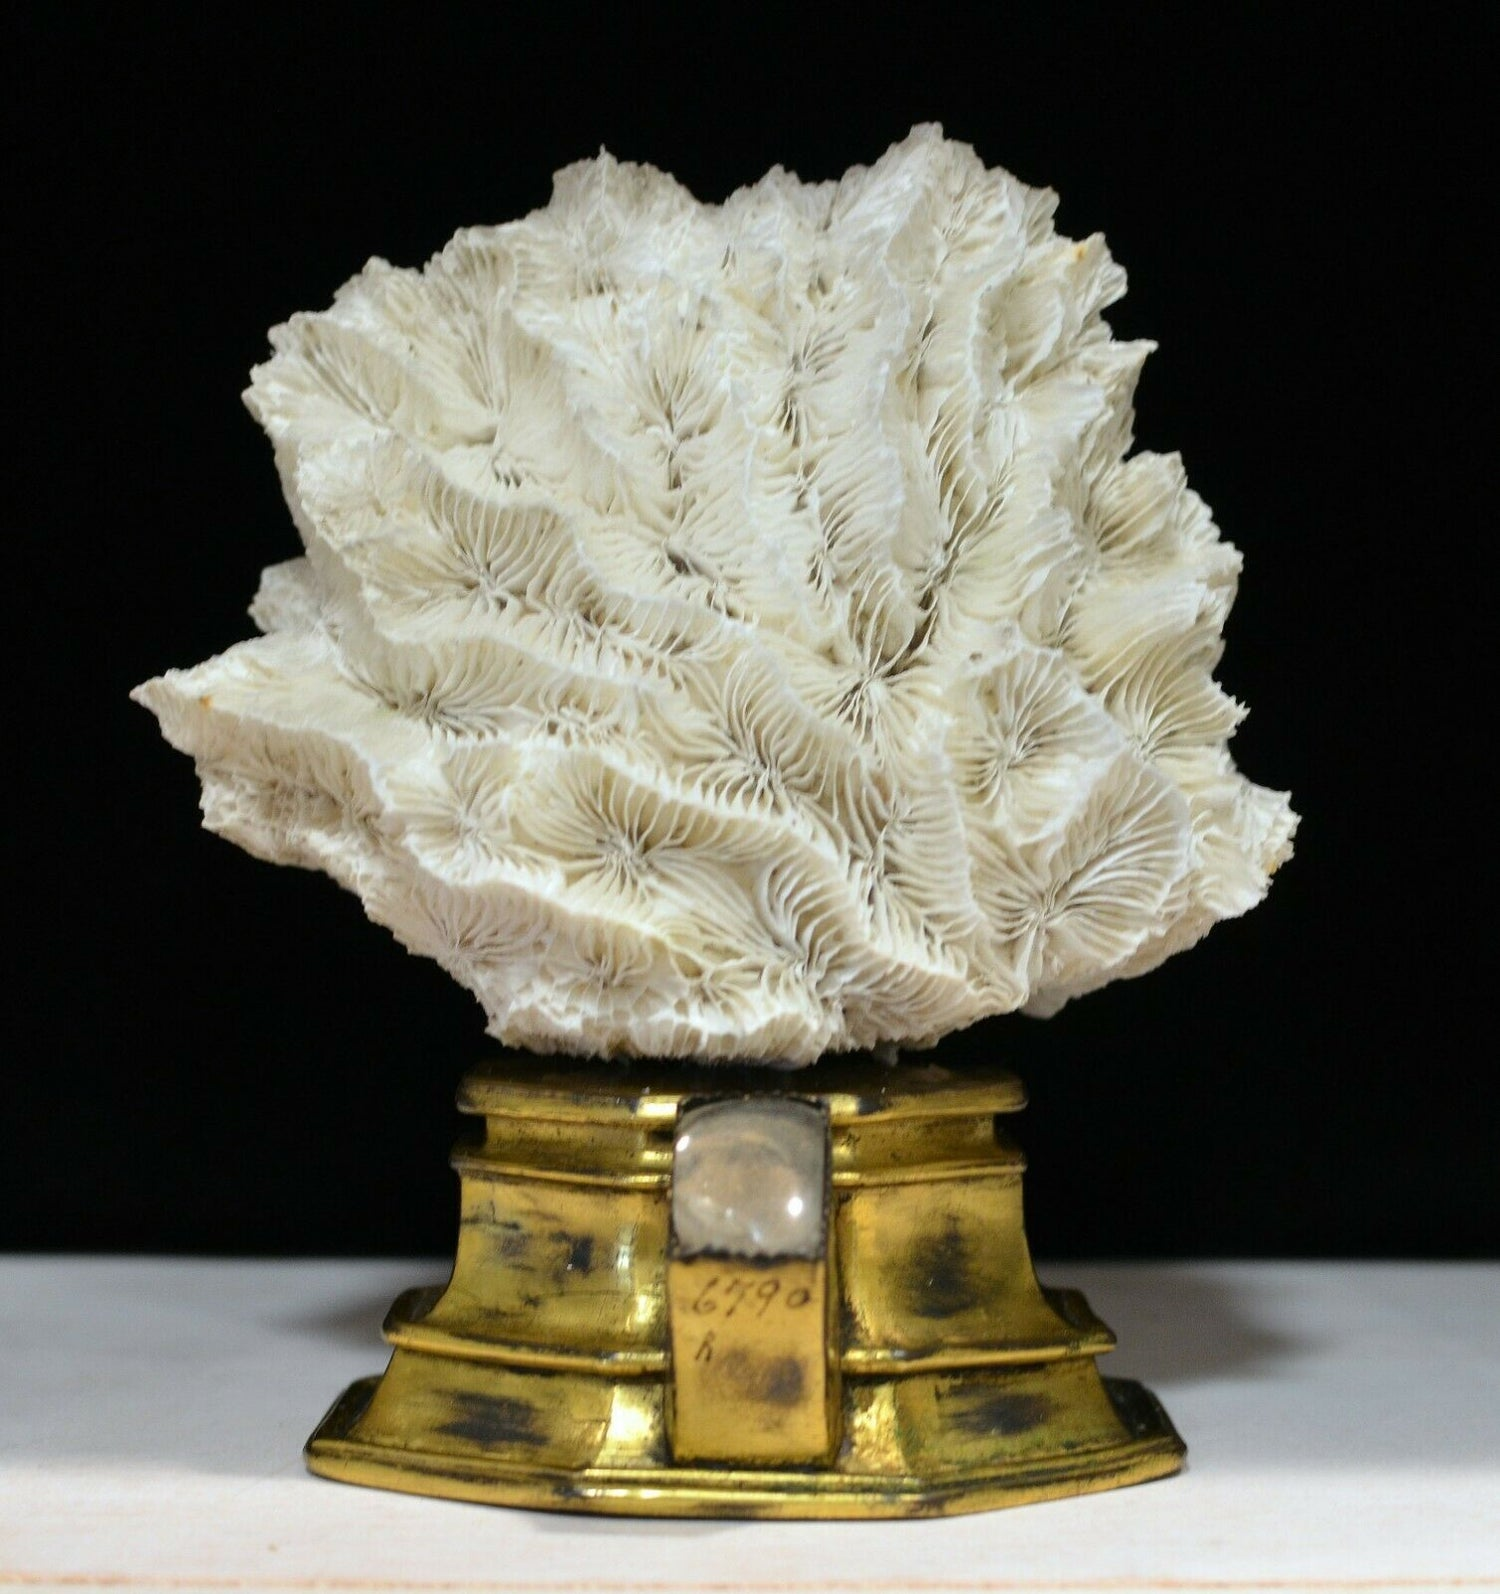 Image of 16th century gilt reliquary base with modern white coral